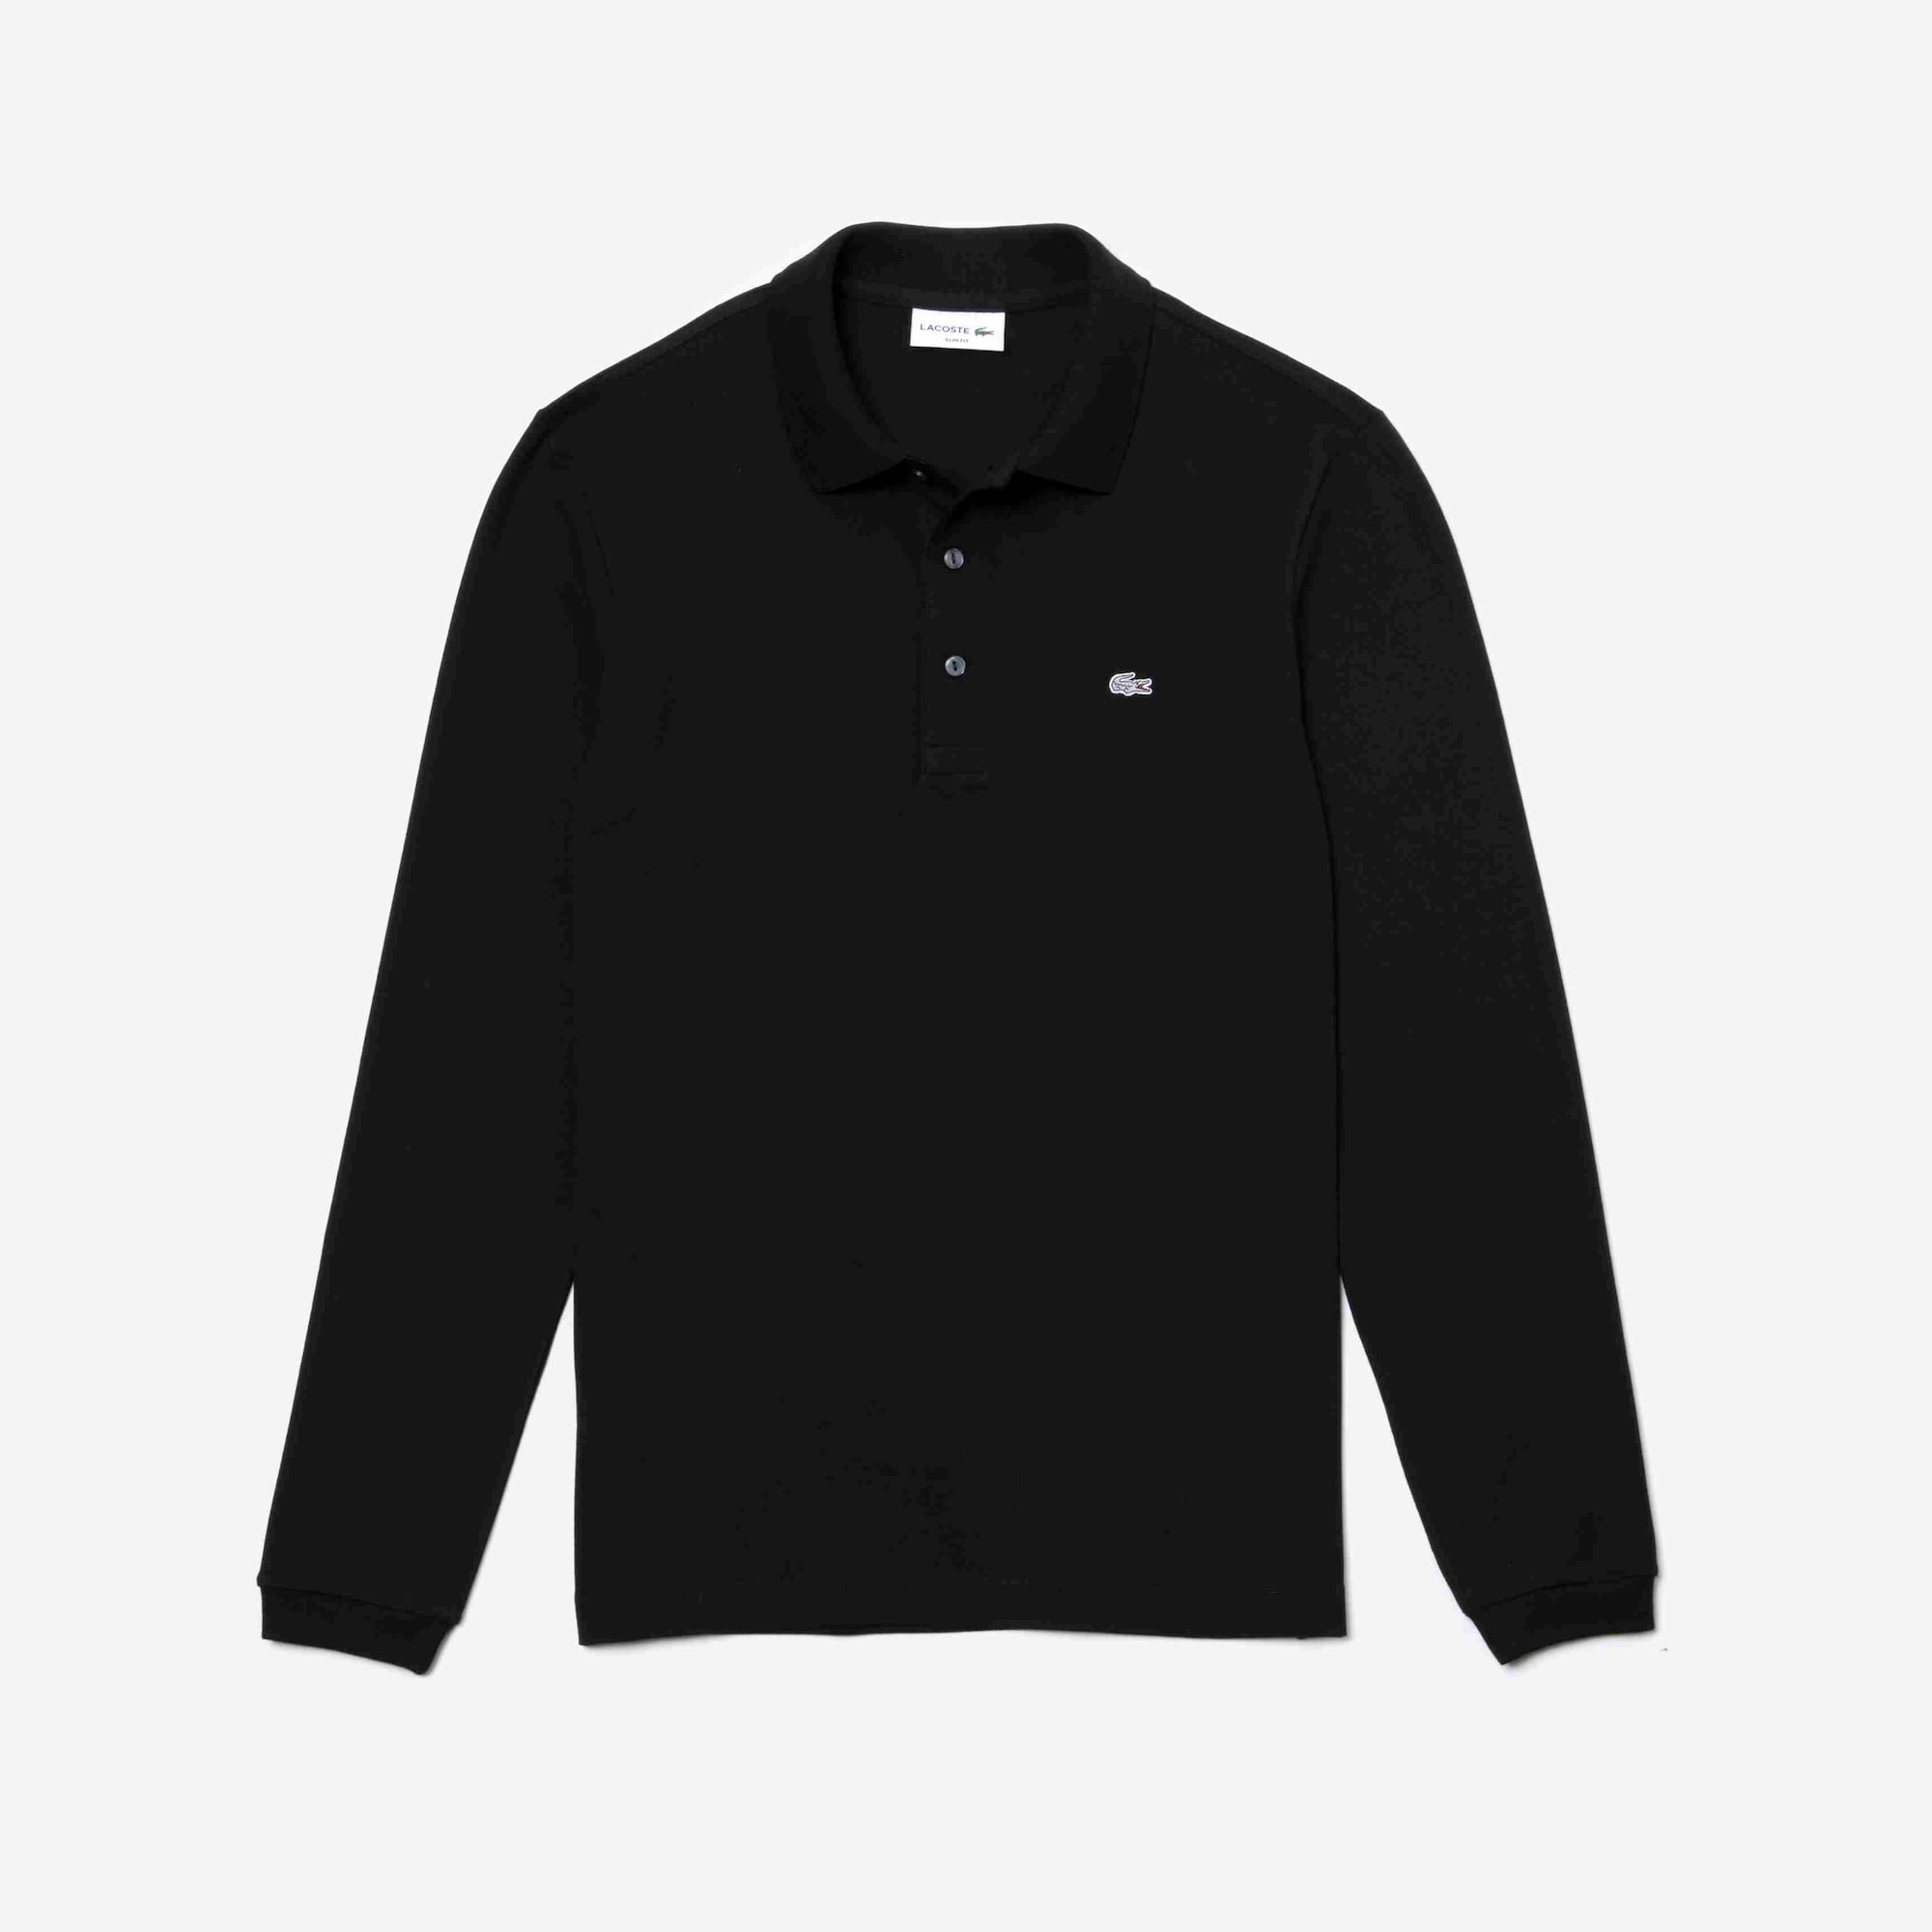 LACOSTE Slim Fit Herren-Poloshirt aus Mini-Piqué mit Stretch